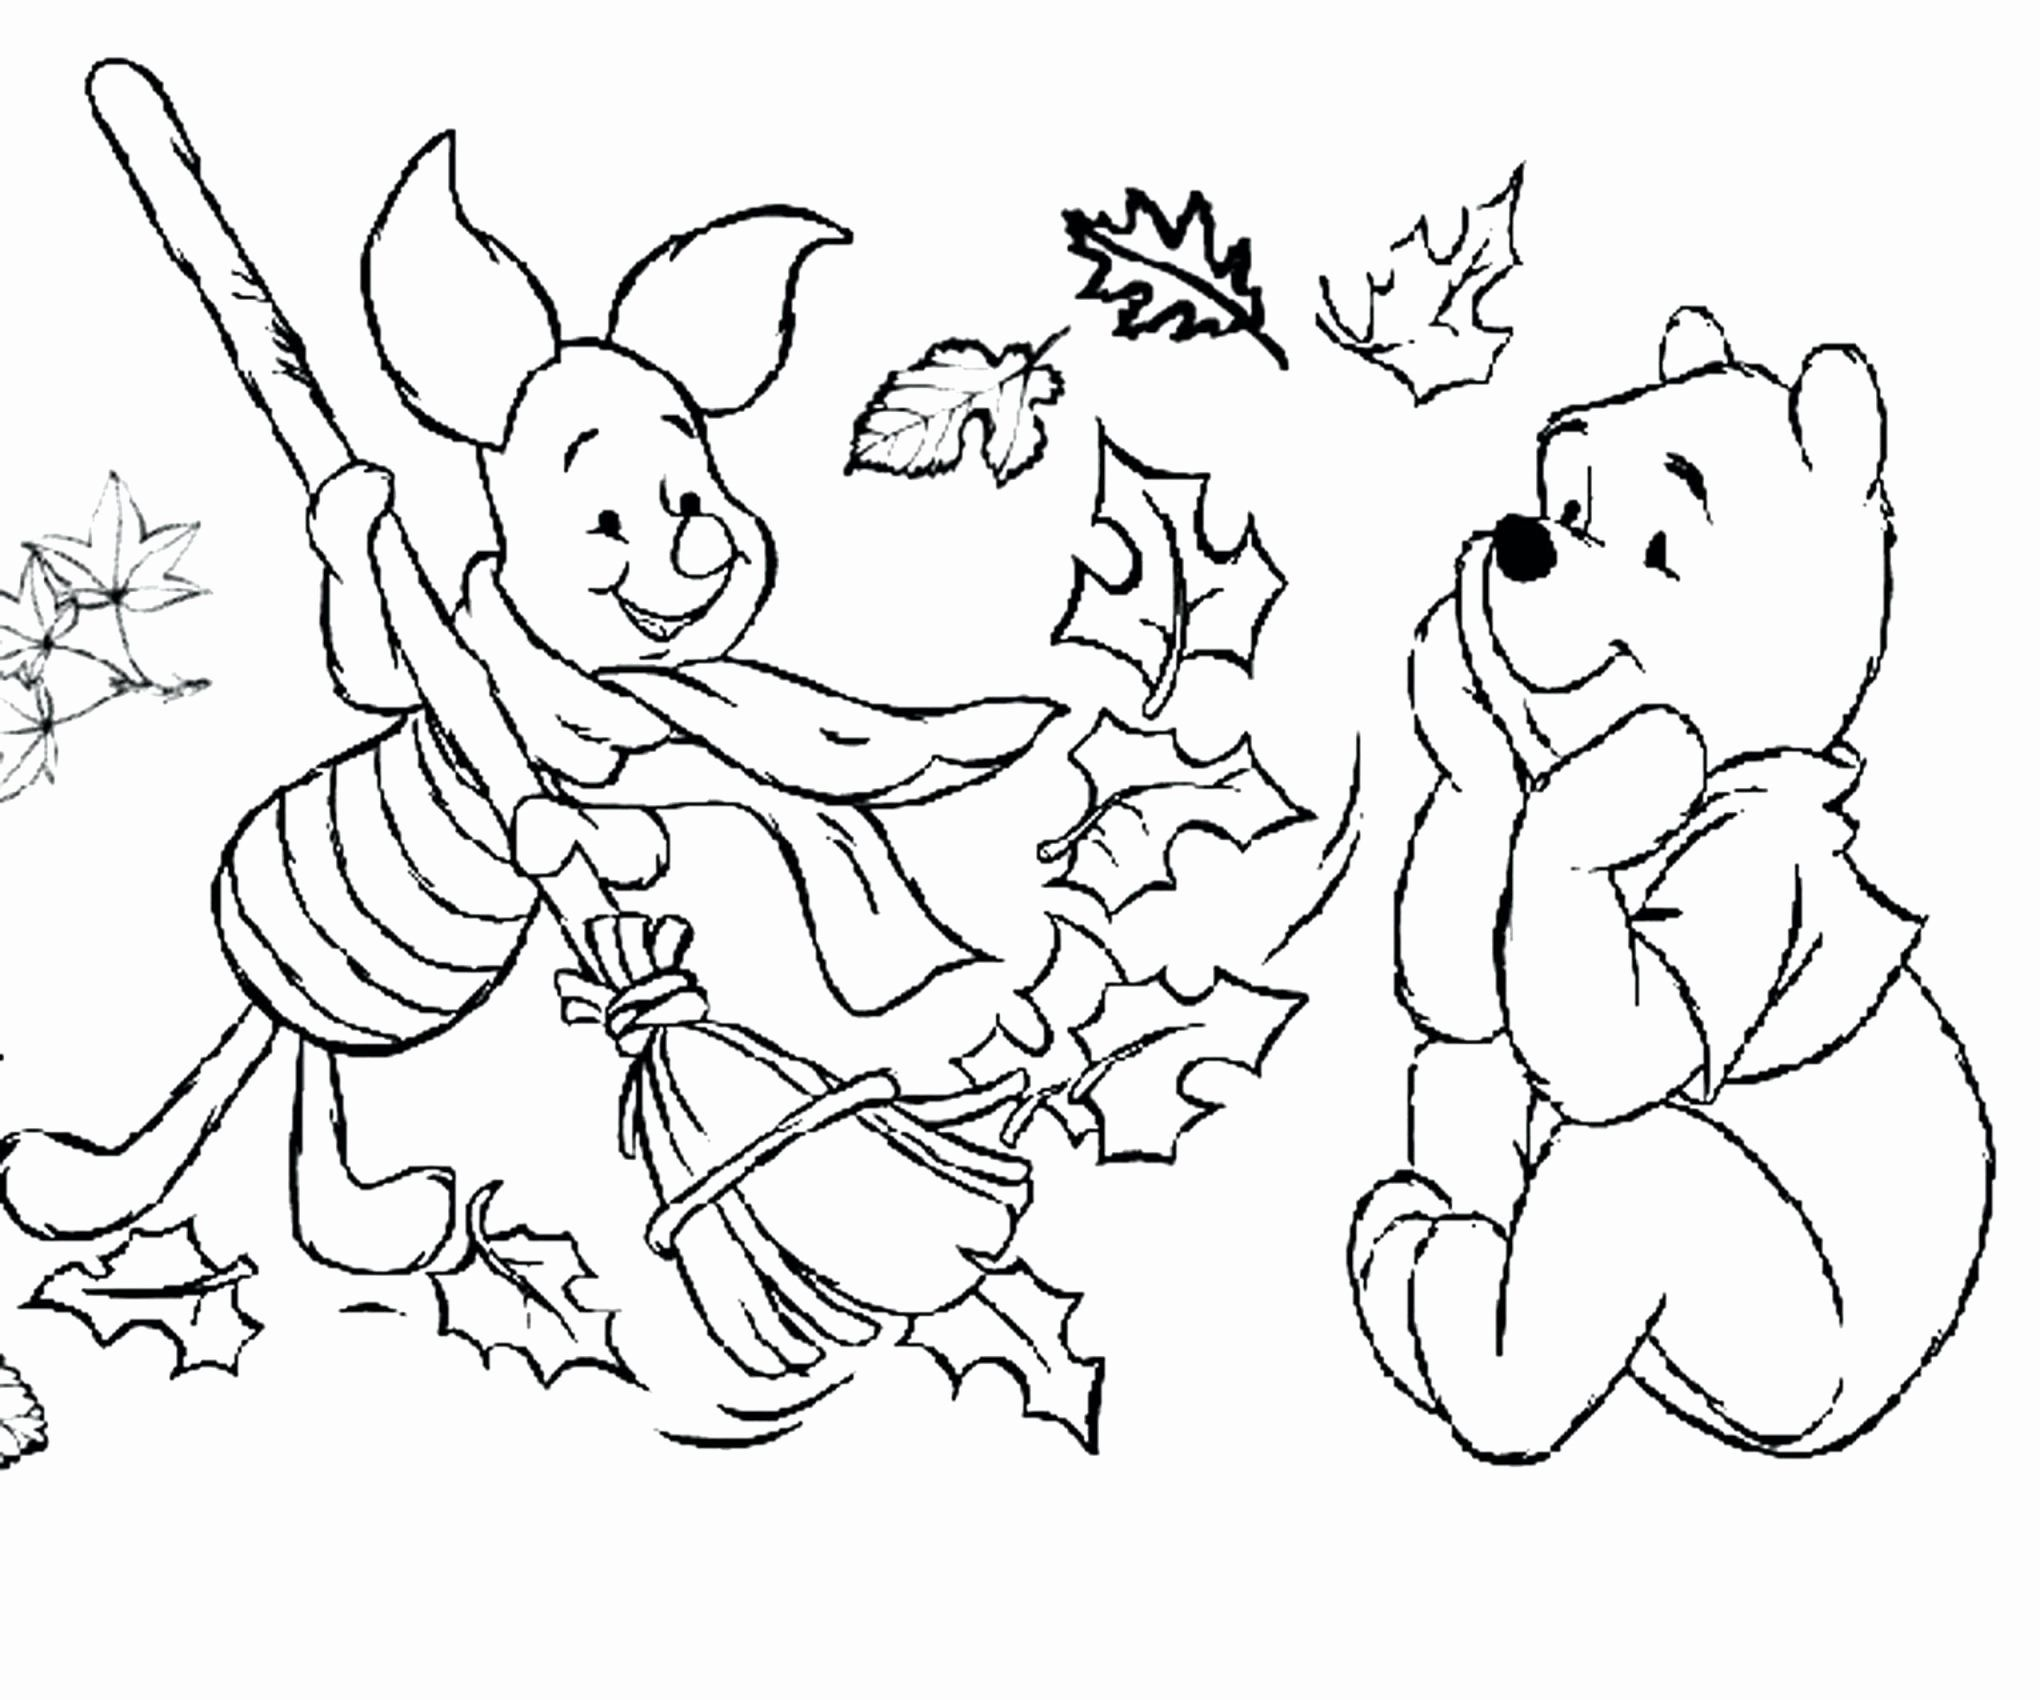 Deep Sea Coloring Pages New Awesome Endangered Sea Animals Endangered Species And Fall Coloring Pages Flag Coloring Pages Halloween Coloring Pages